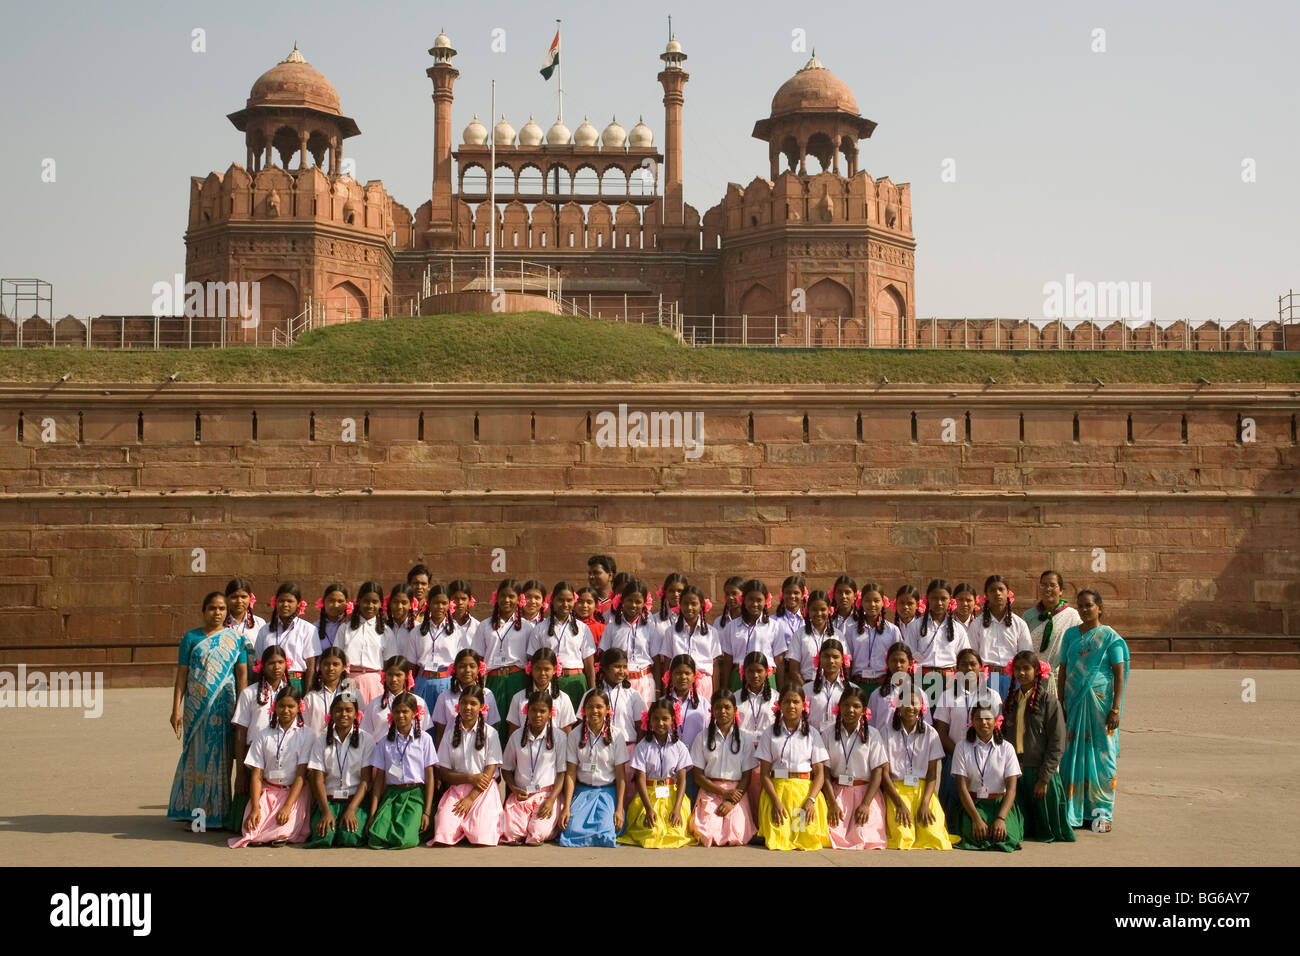 India Delhi Red fort Lahore gate & school party - Stock Image